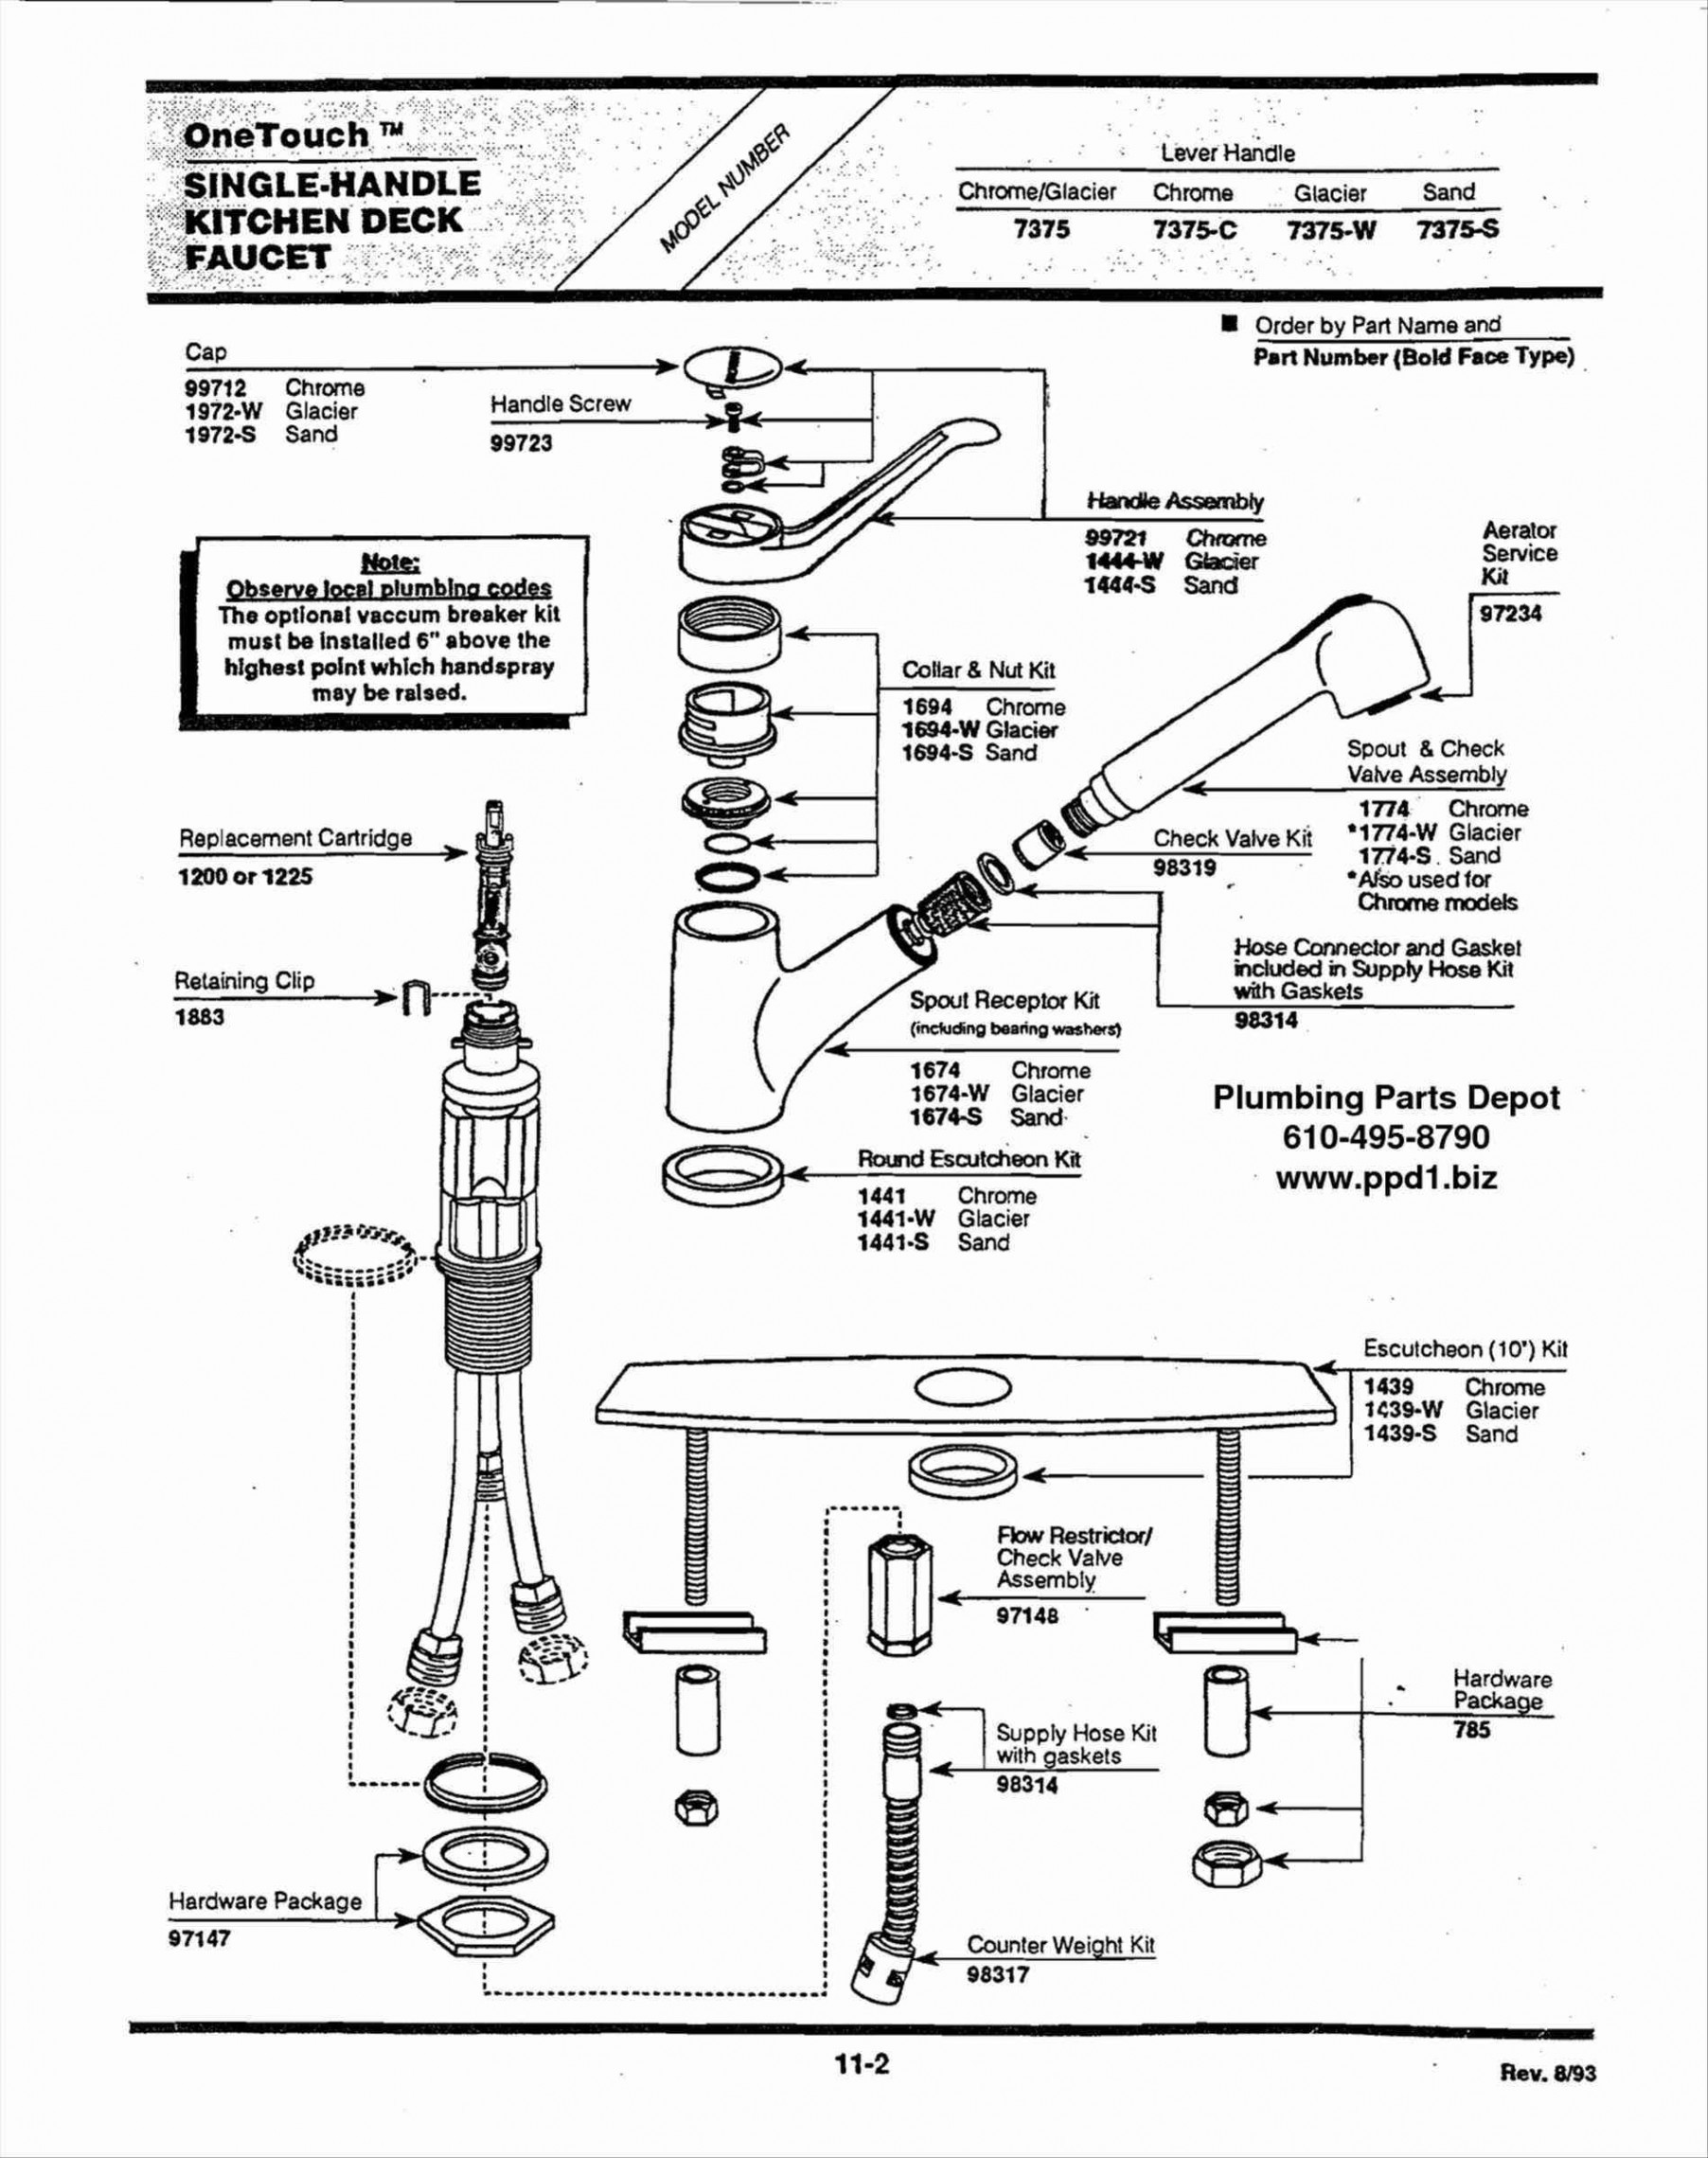 American Standard Faucet Parts Diagram Awesome American Standard Kitchen Faucet Parts Diagram within Faucet Of American Standard Faucet Parts Diagram